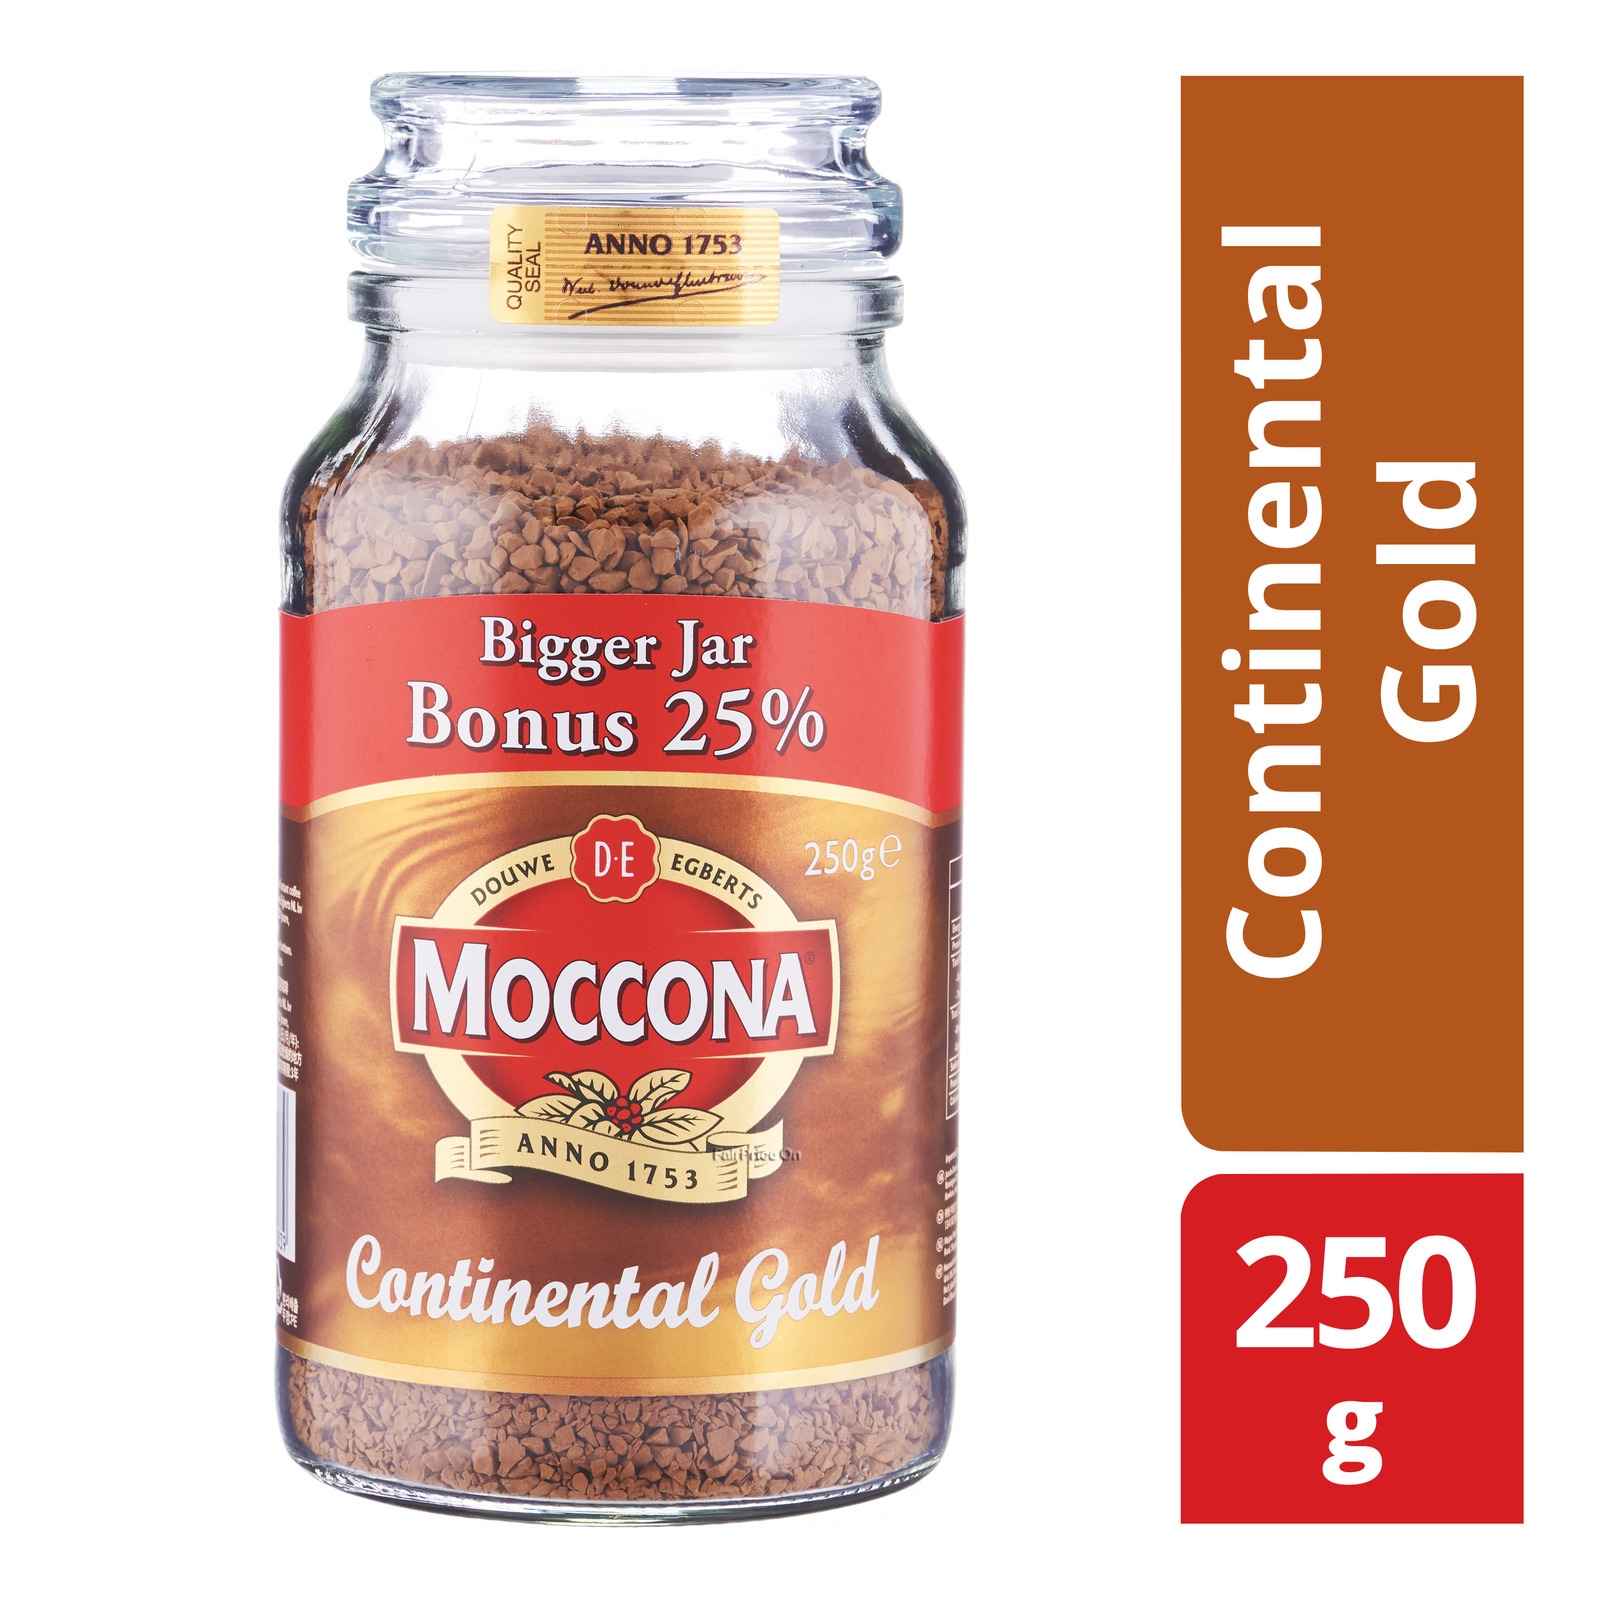 Moccona Instant Coffee - Continental Gold